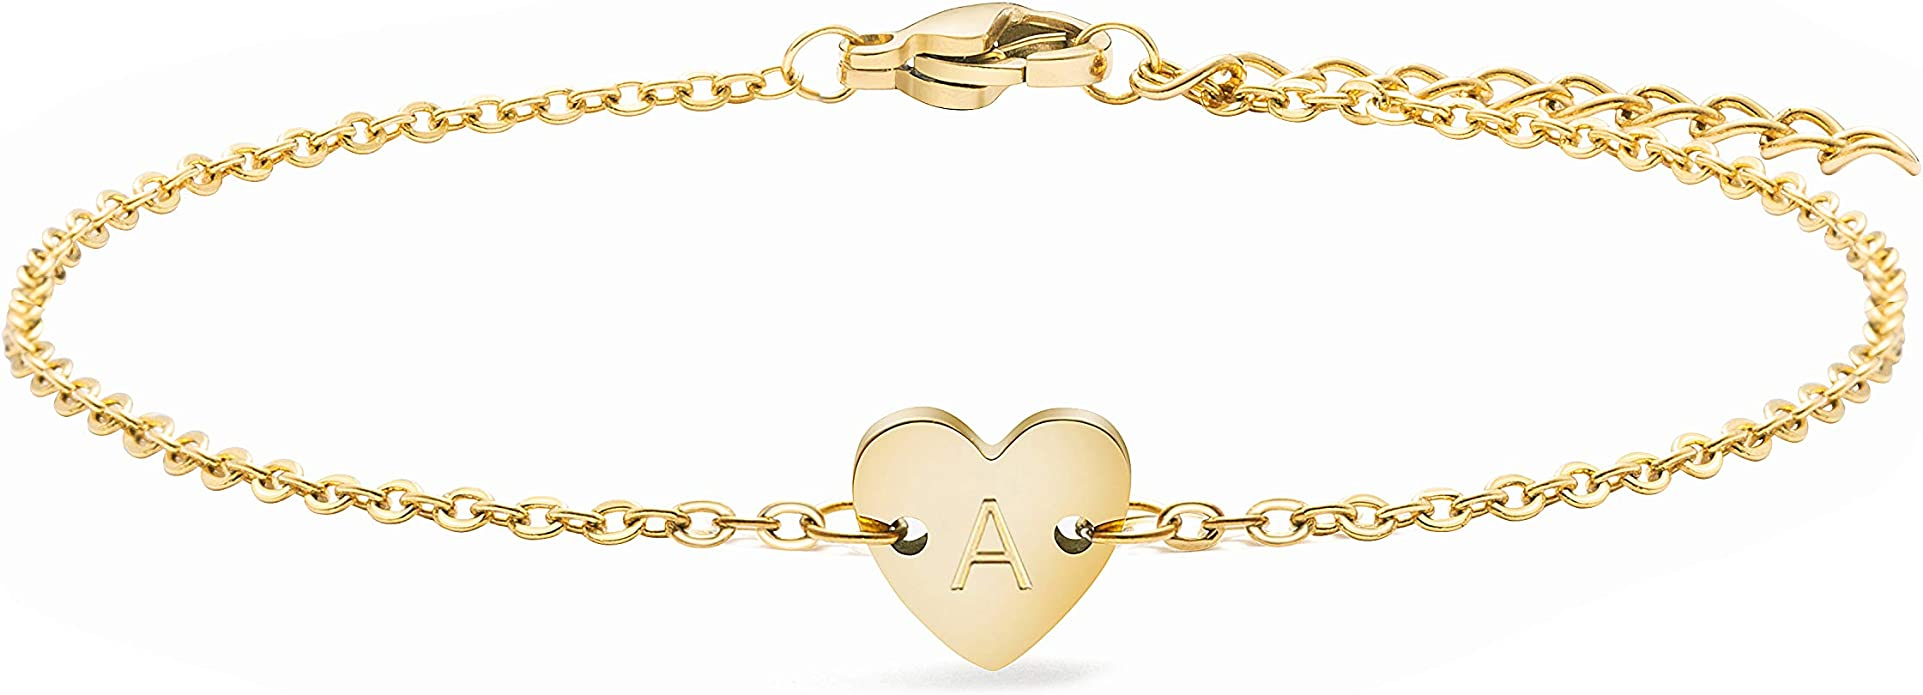 Bracelet Chain Personalized Gift for Friends Women Anklet 24K Gold Plated Charm